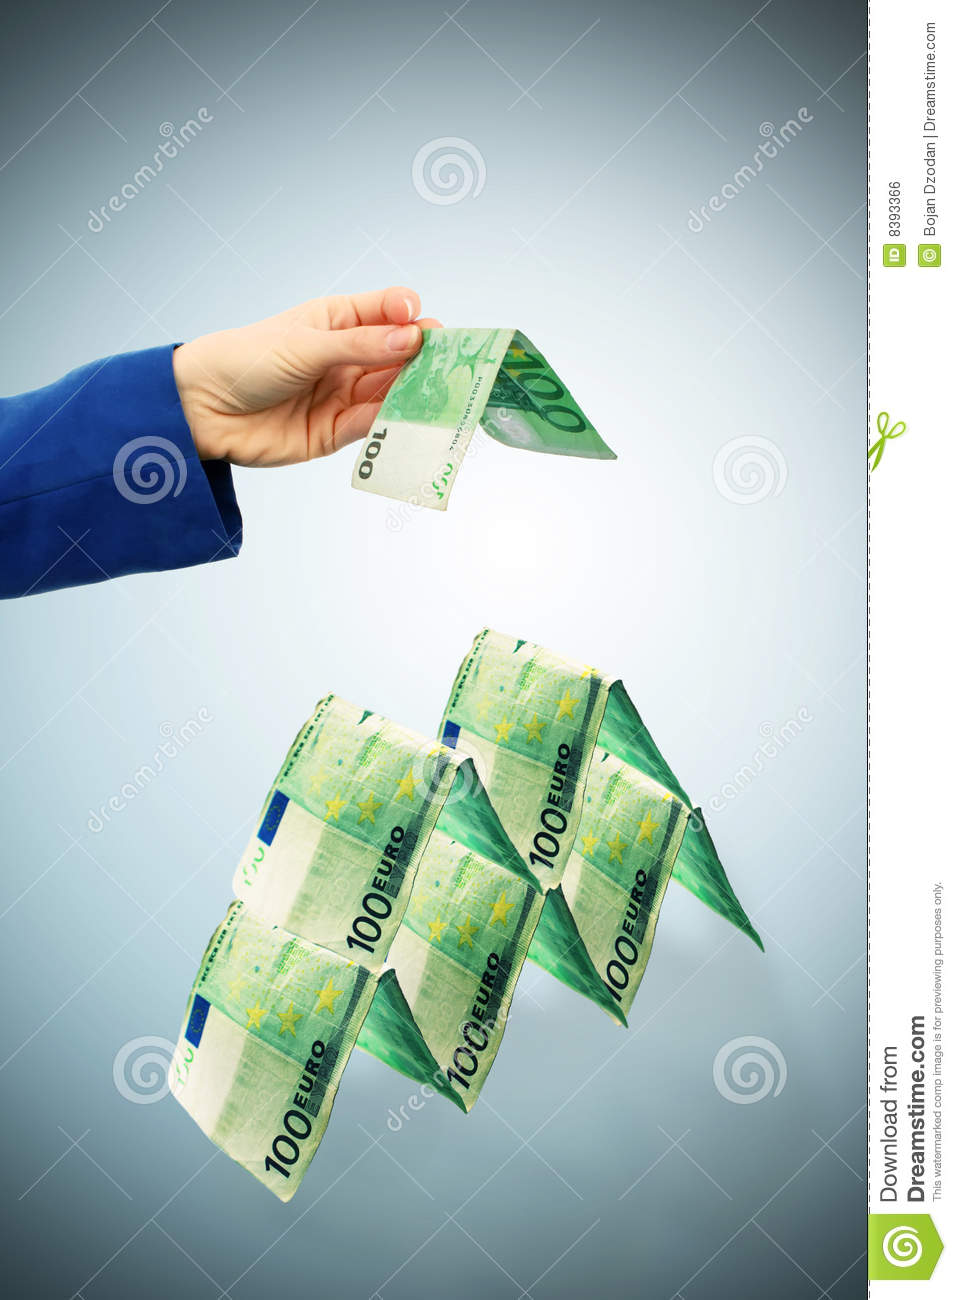 Building with money royalty free stock image image 8393366 for Free money to build a house